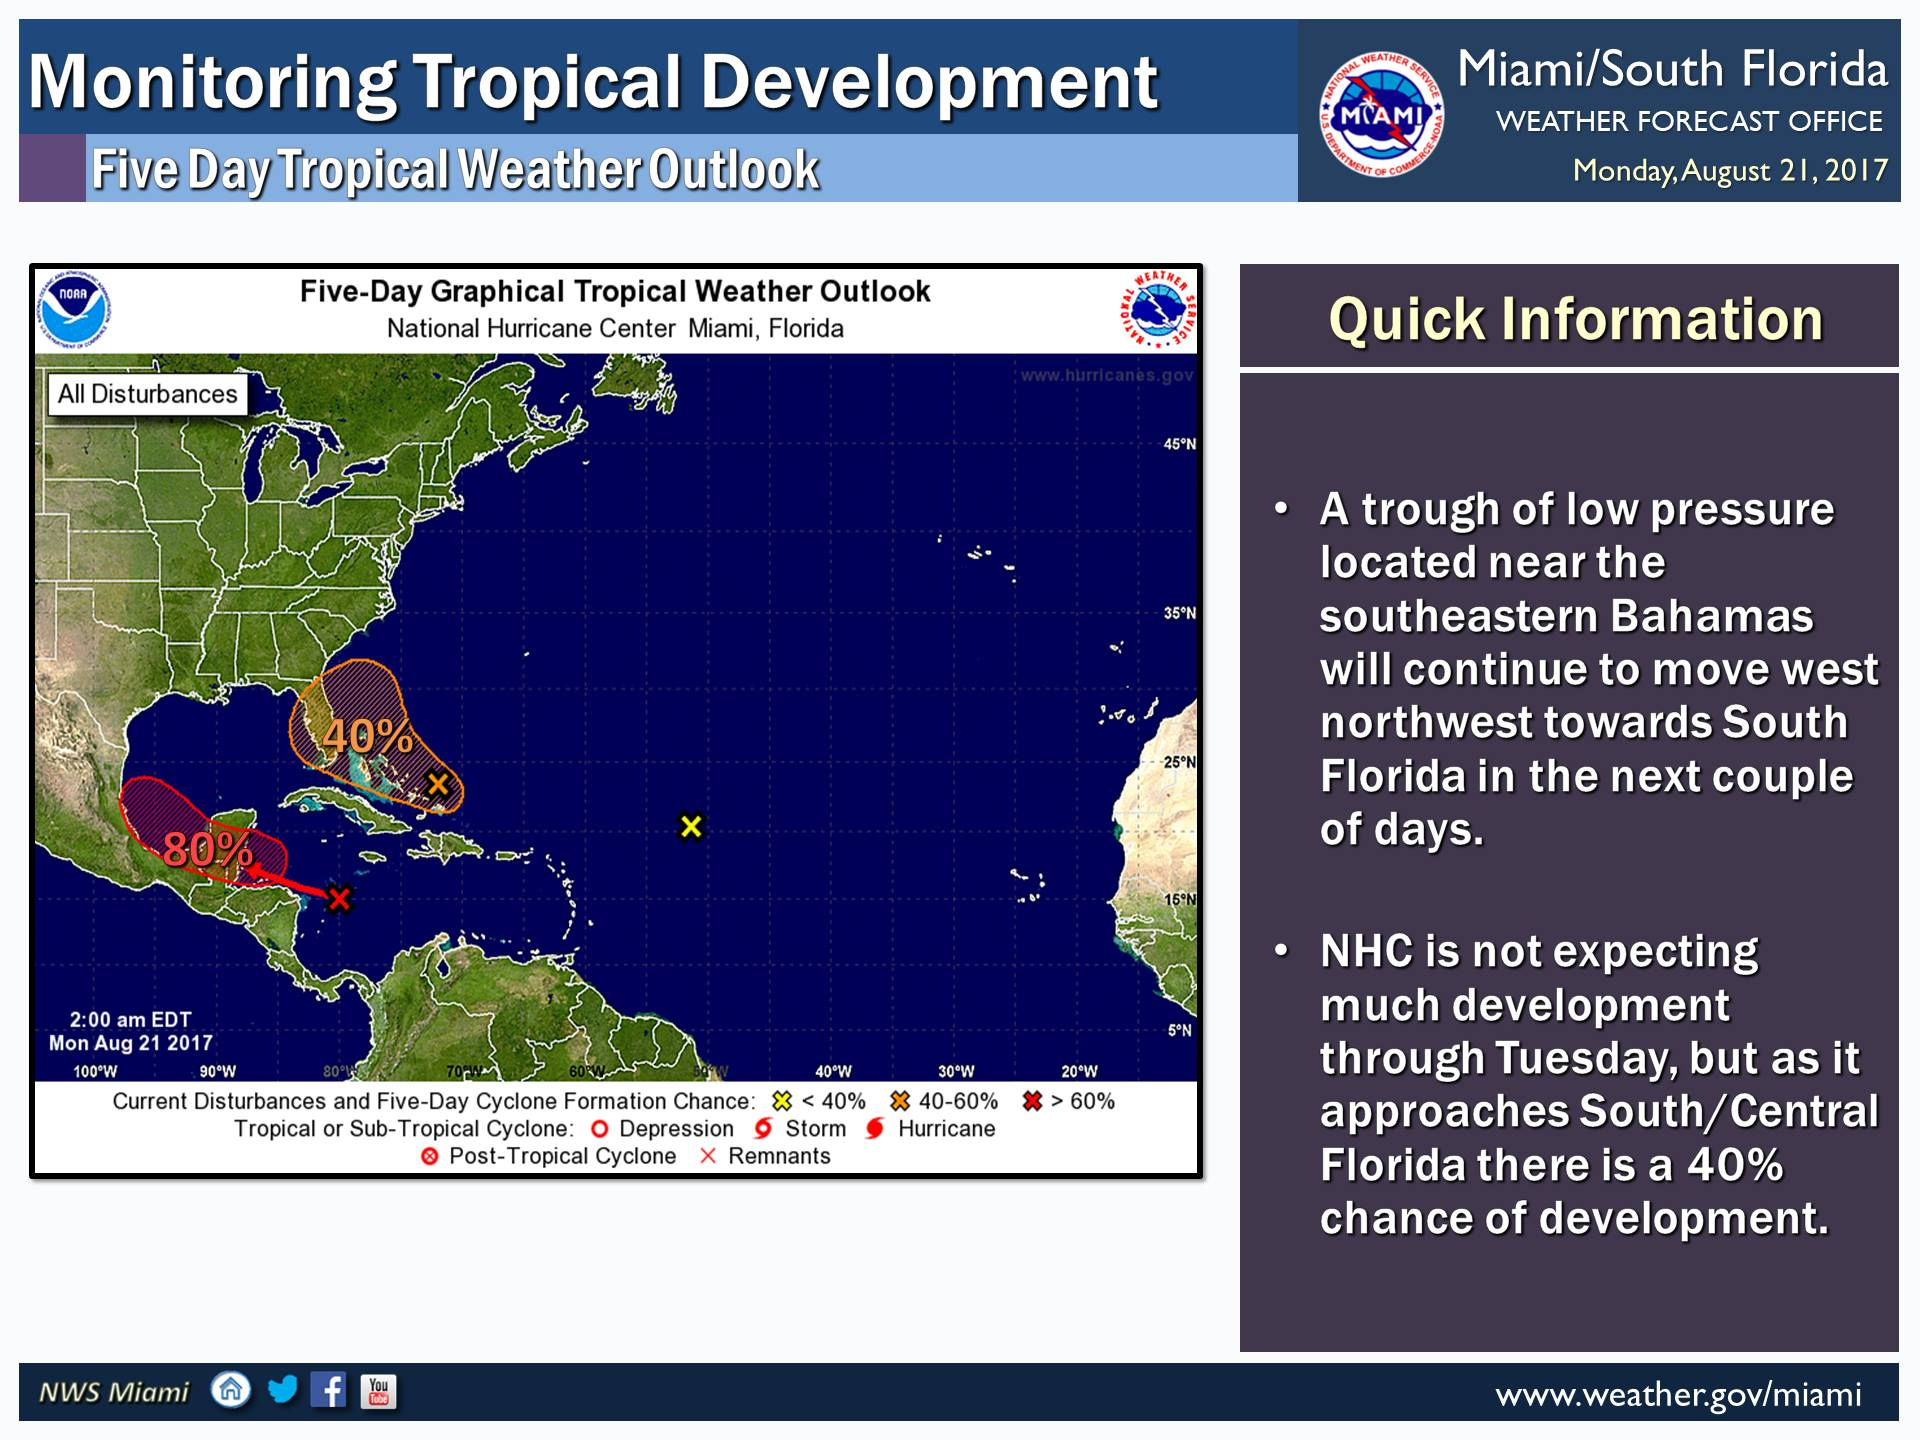 Weak tropical wave could affect Florida weather next week